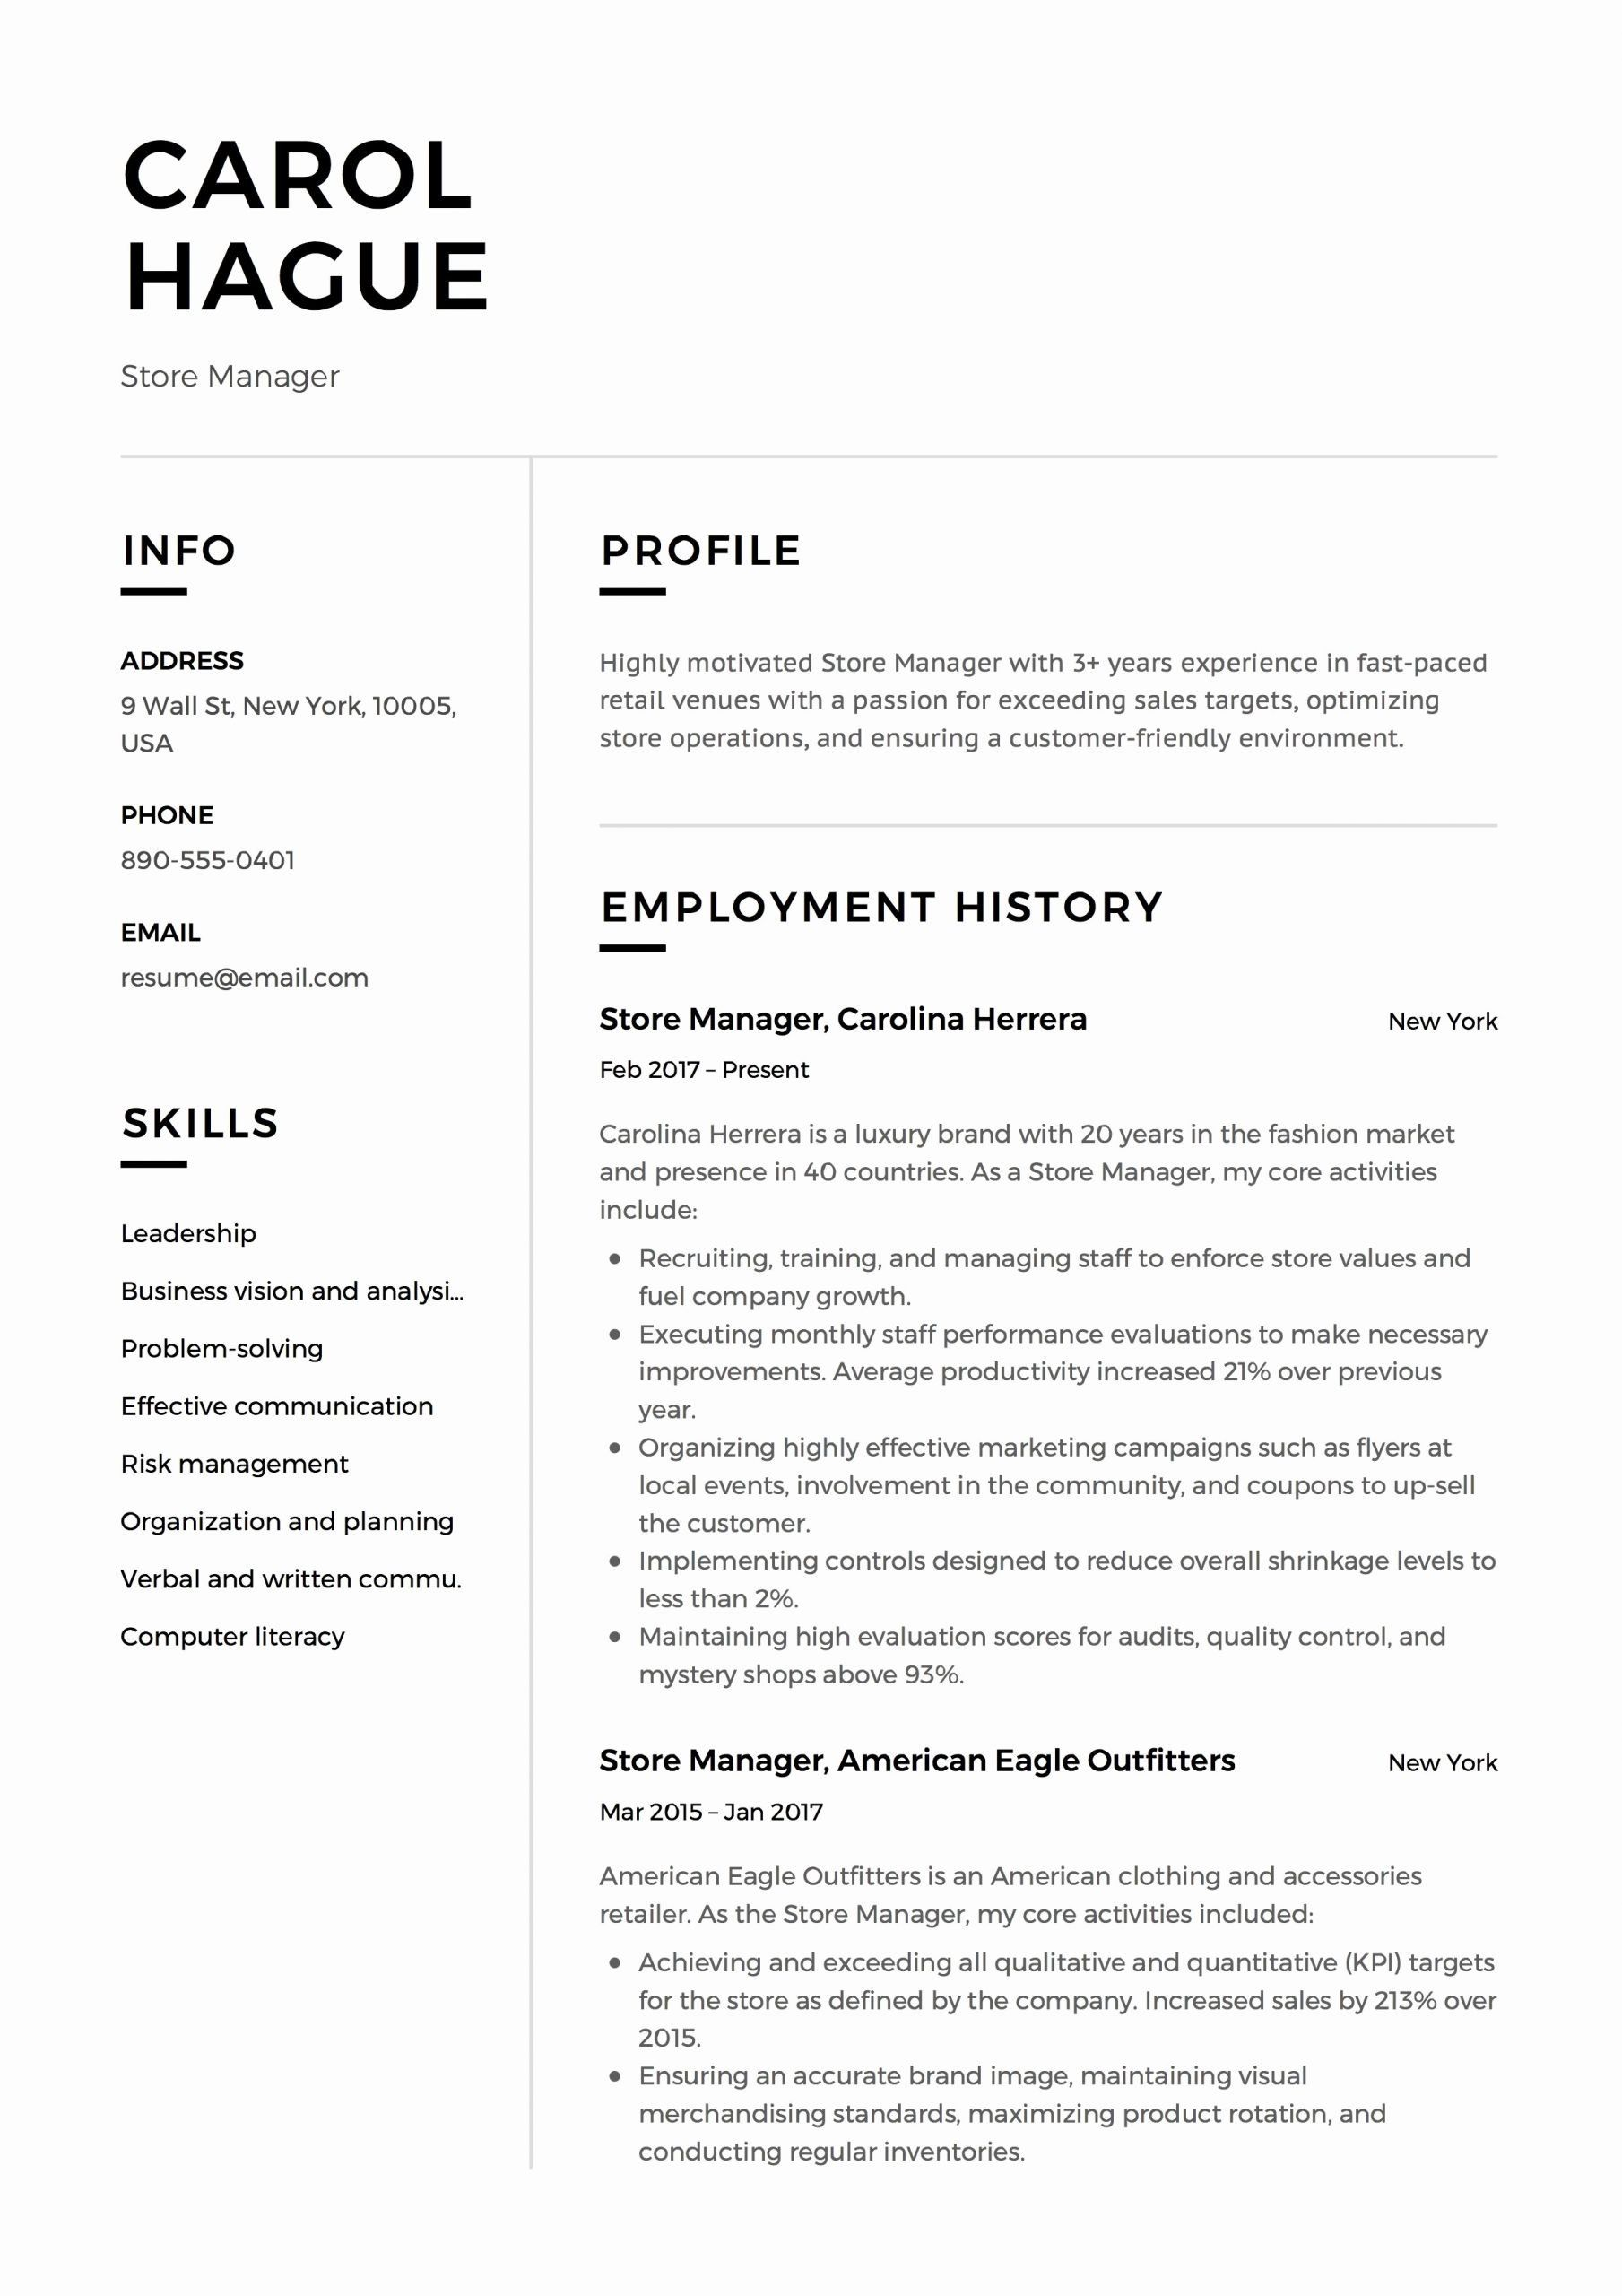 Excel Skills Resume Examples Unique Store Manager Resume Sample Template Example Cv Formal Design In 2020 Manager Resume Resume Guide Resume Examples